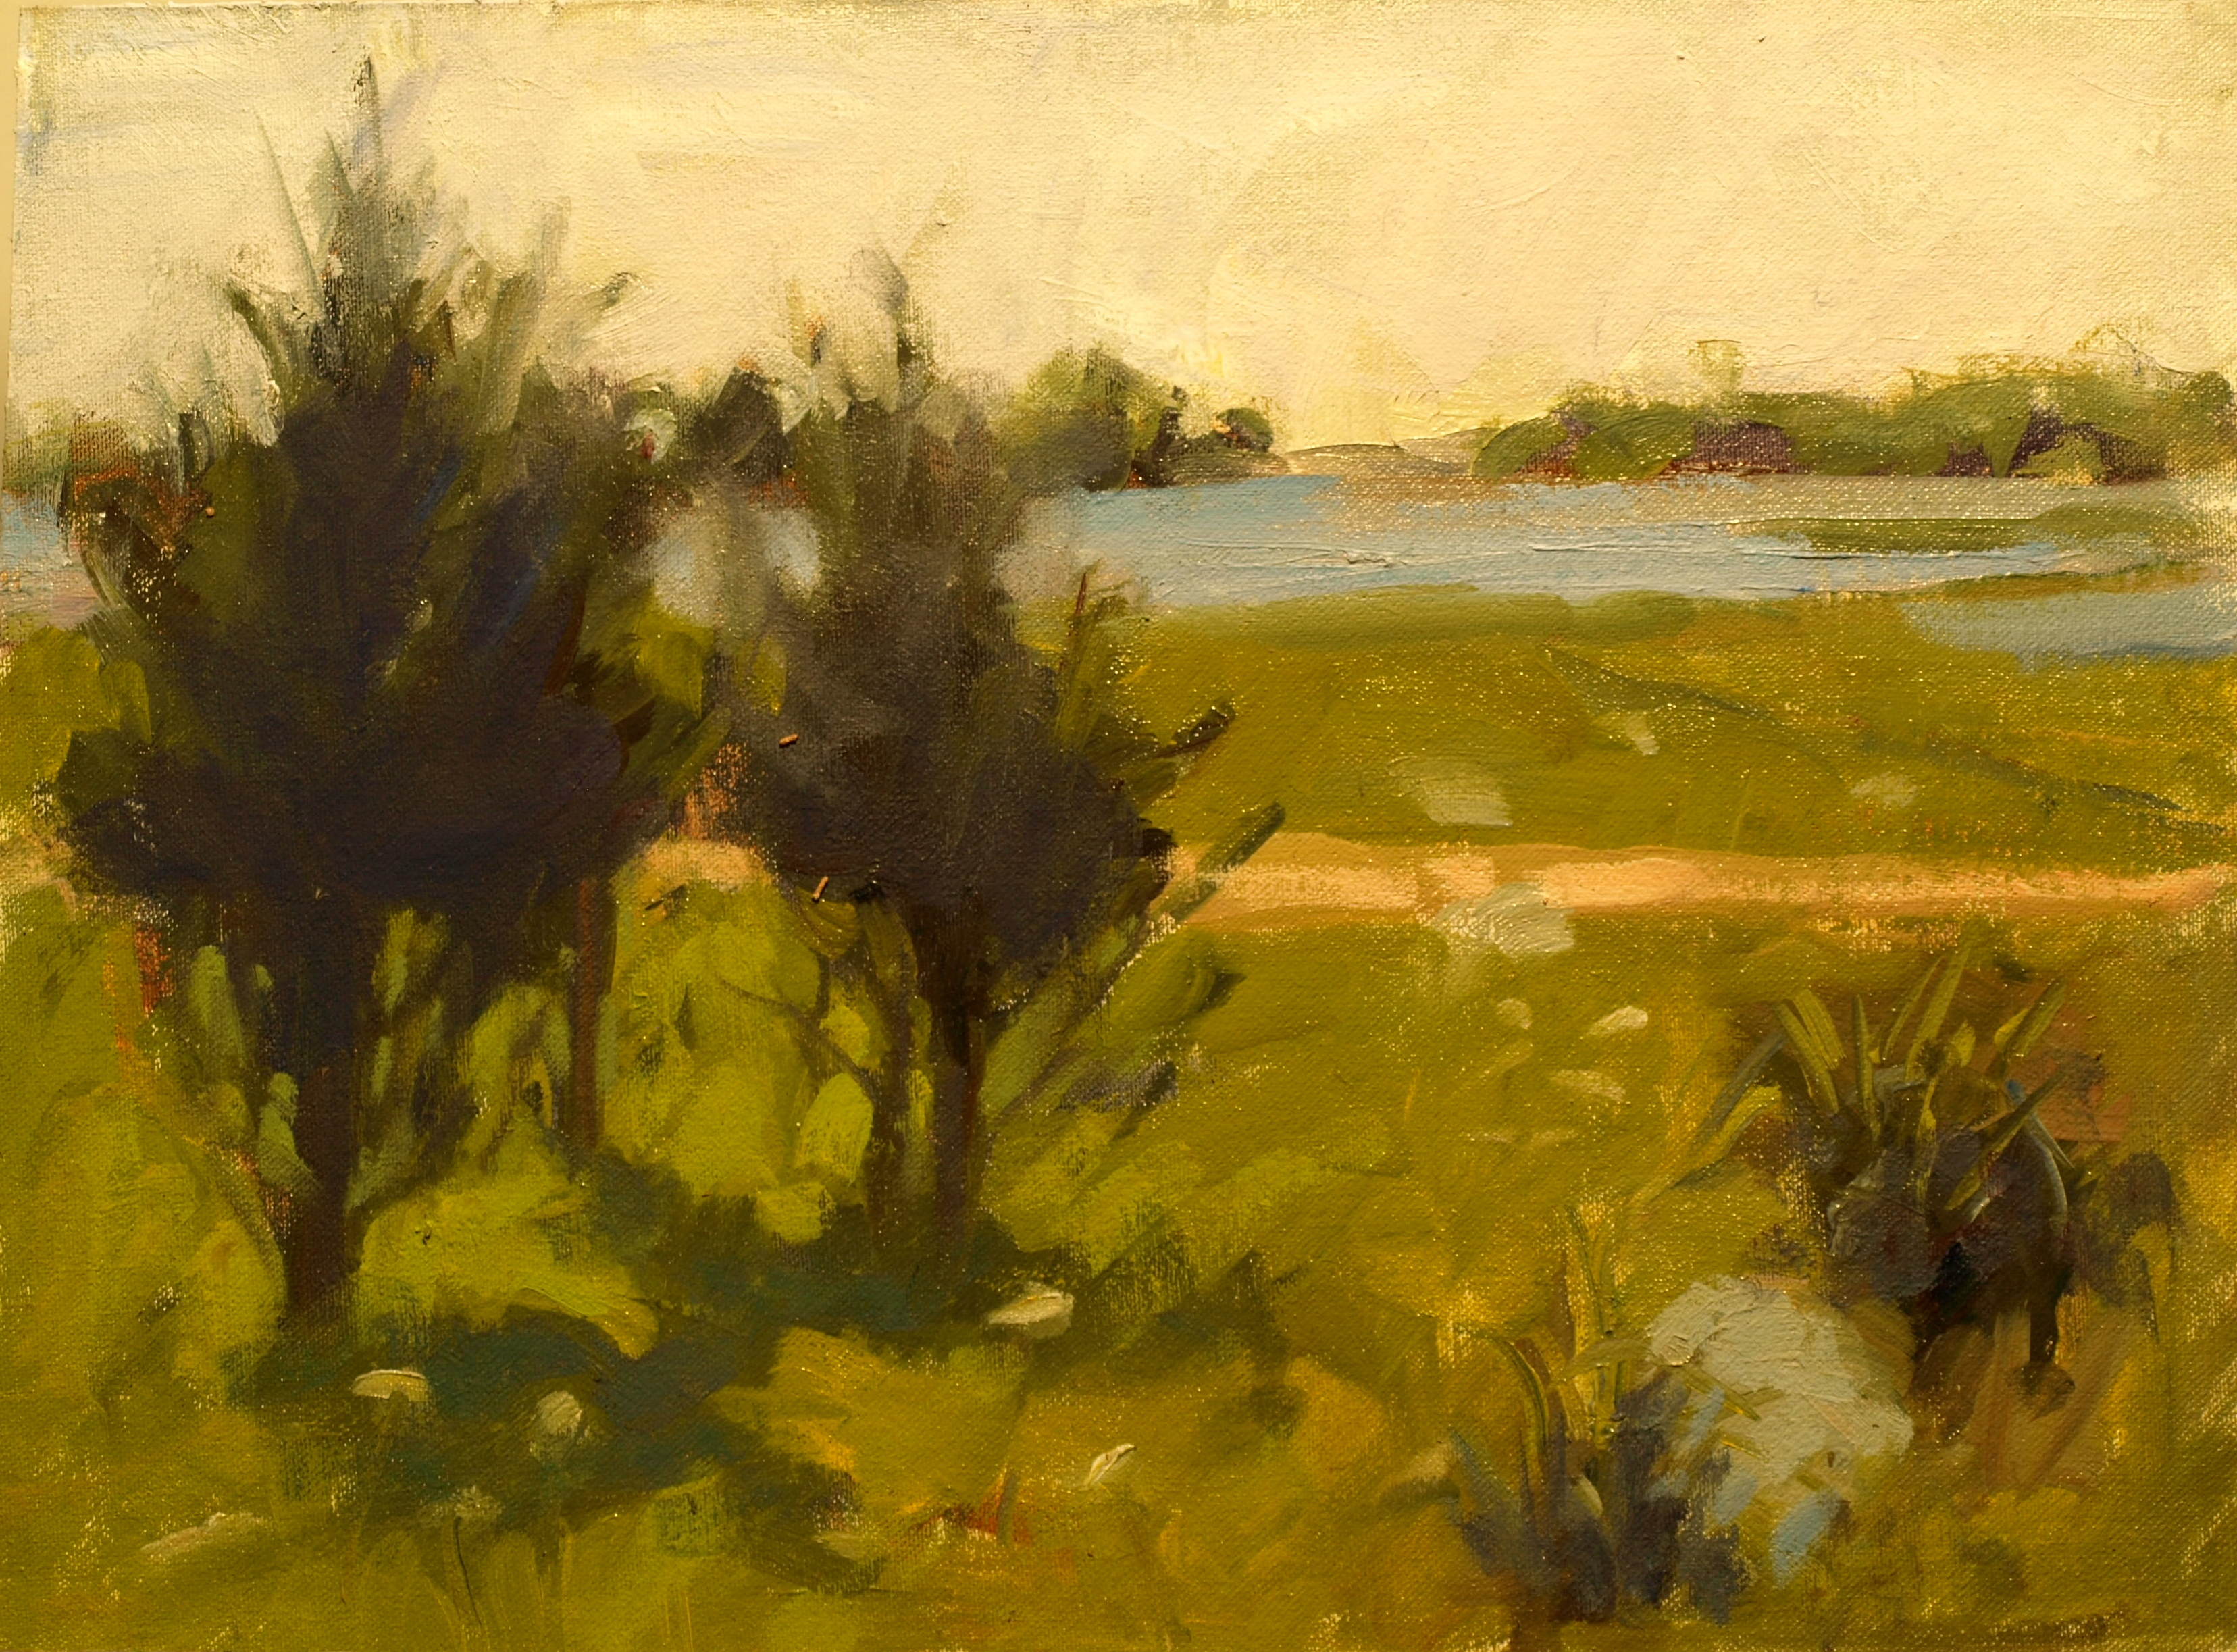 Cedars - Stonington, Oil on Canvas on Panel, 12 x 16 Inches, by Susan Grisell, $300